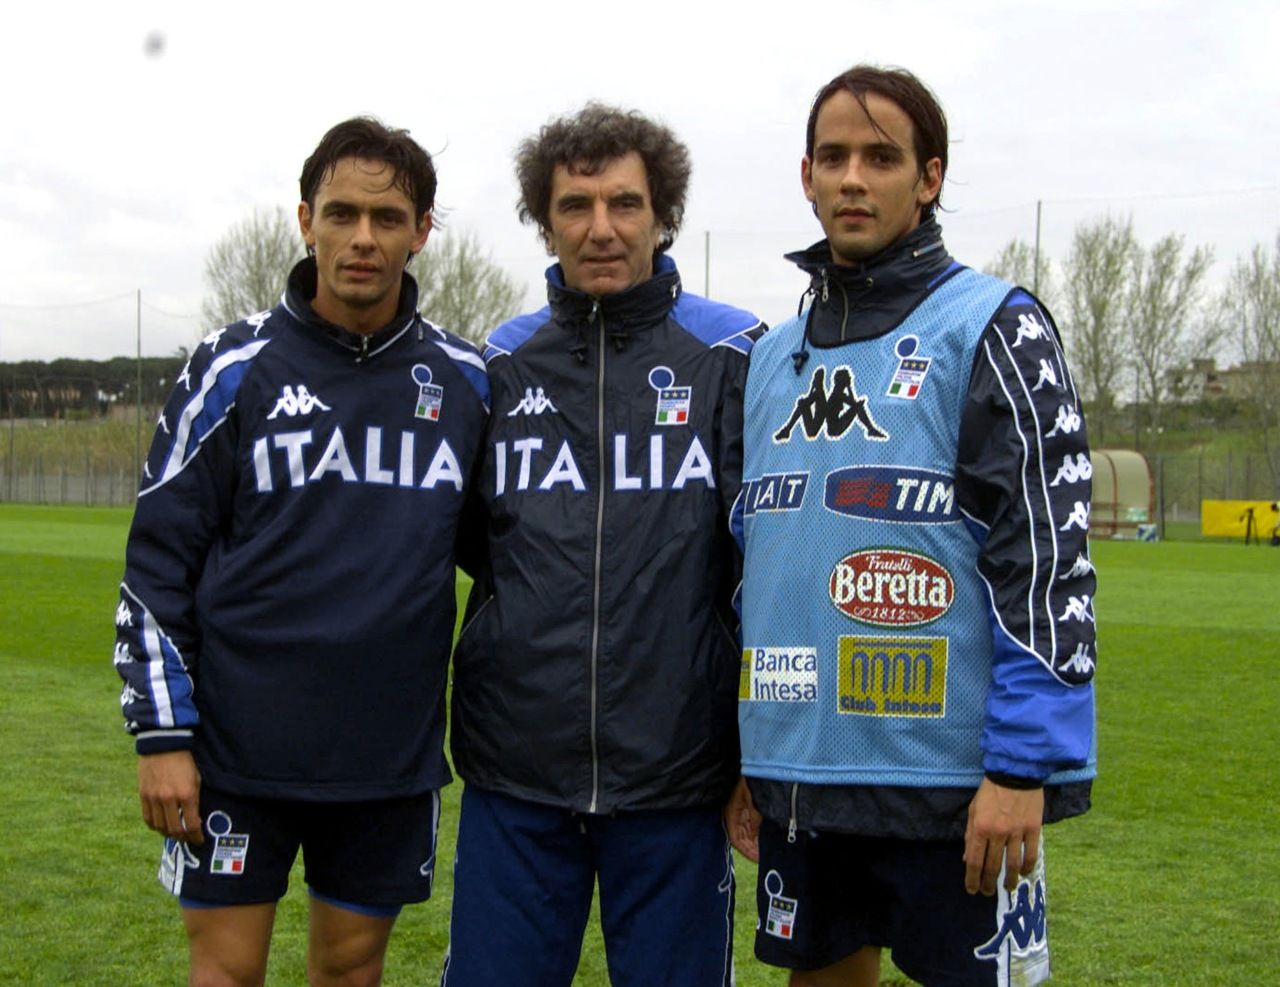 Pippo Inzaghi Dino Zoff et Simone Inzaghi Italie